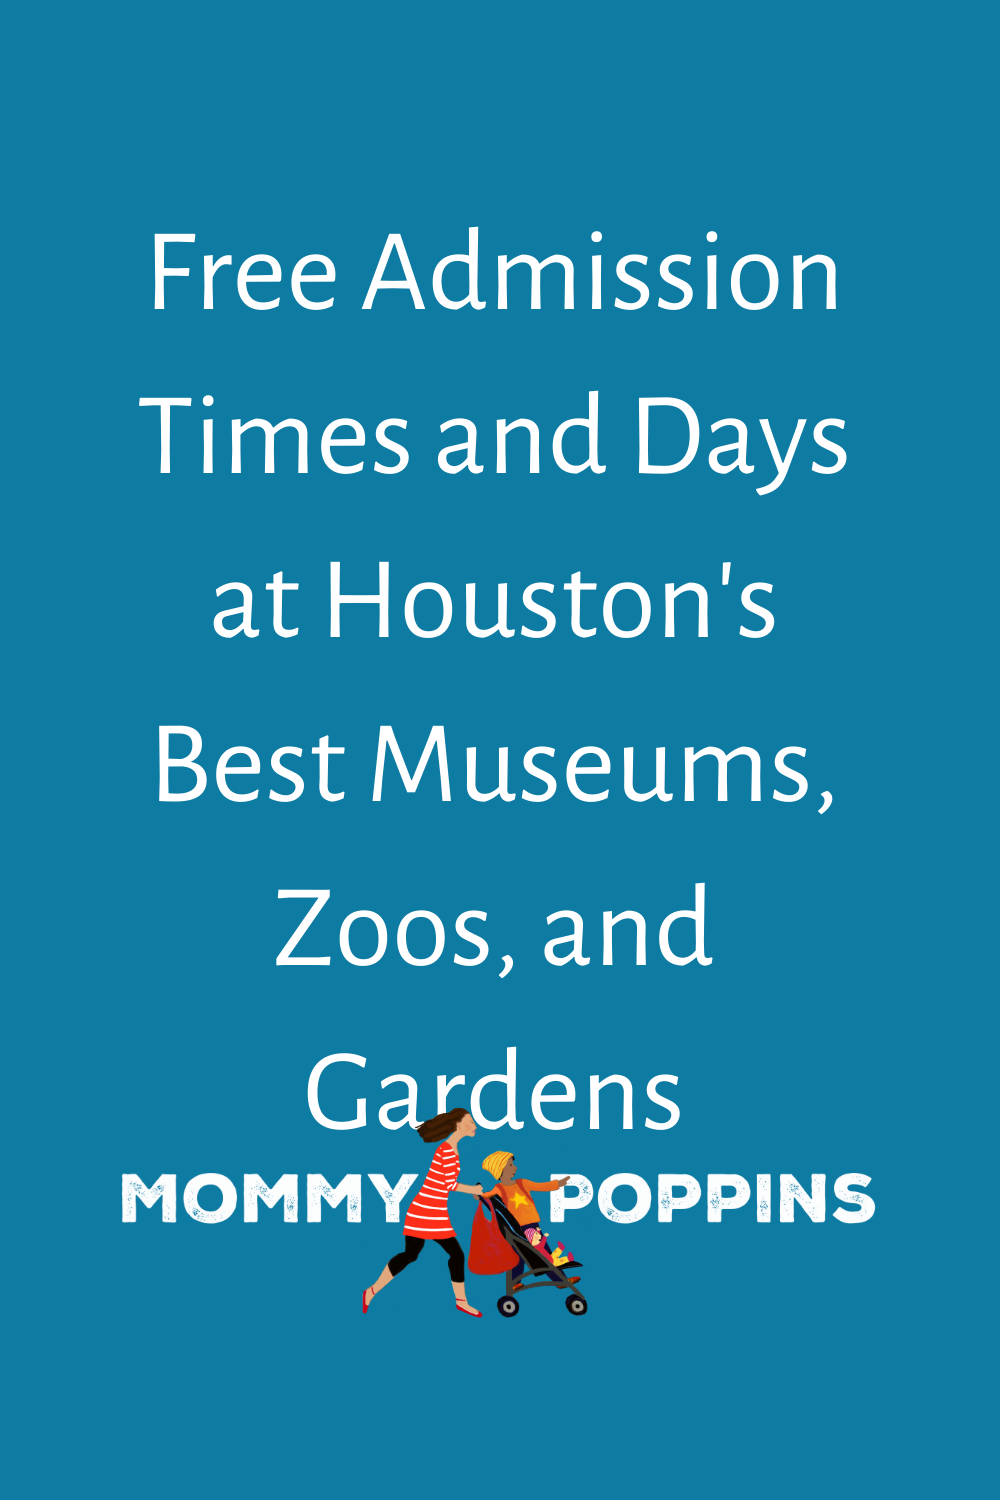 Days And Times For Free Admission To Houston S Museums Mommy Poppins Things To Do With Kids In 2021 Admissions Houston Museum Houston